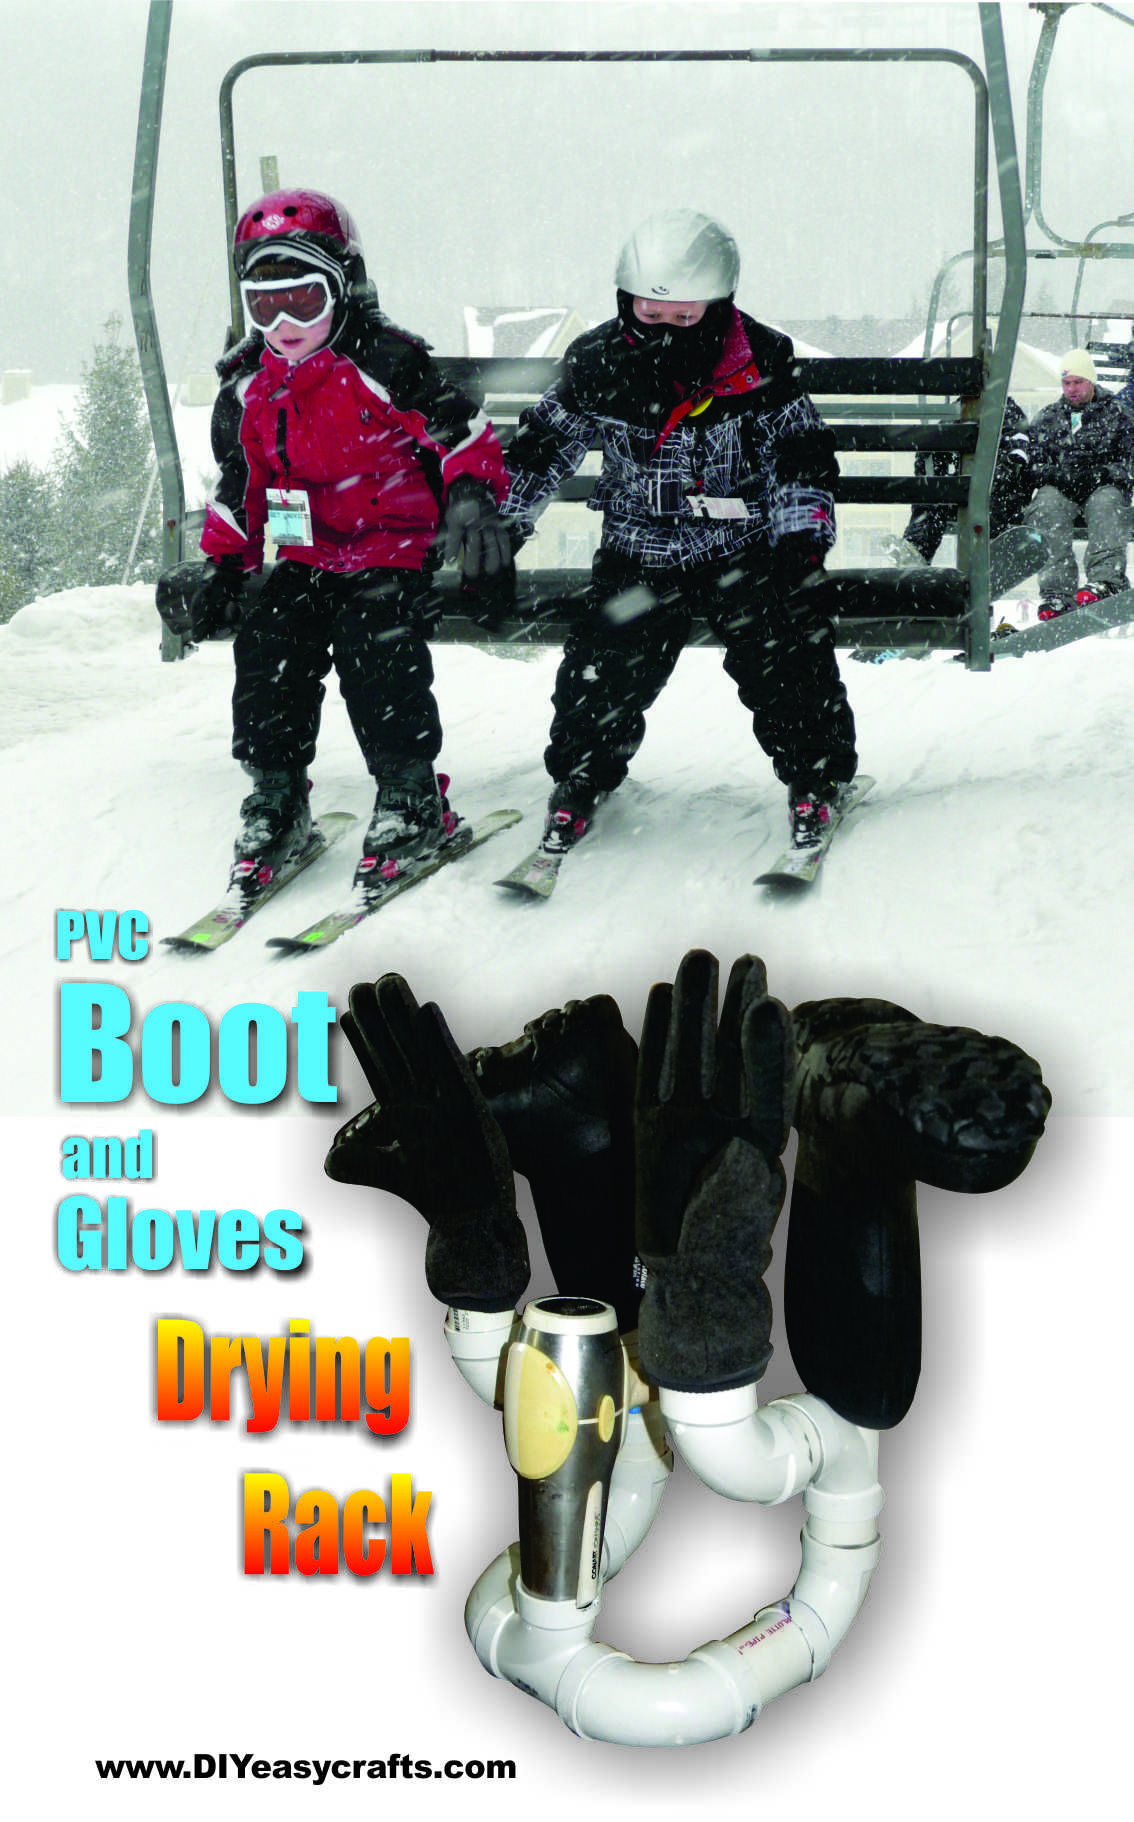 Diy pvc boot and gloves drying rack diyeasycrafts diy diy easy pvc boot and glove drying rack anyone that works or plays outdoors in the winter can benefit from this boot and gloves dryer solutioingenieria Images